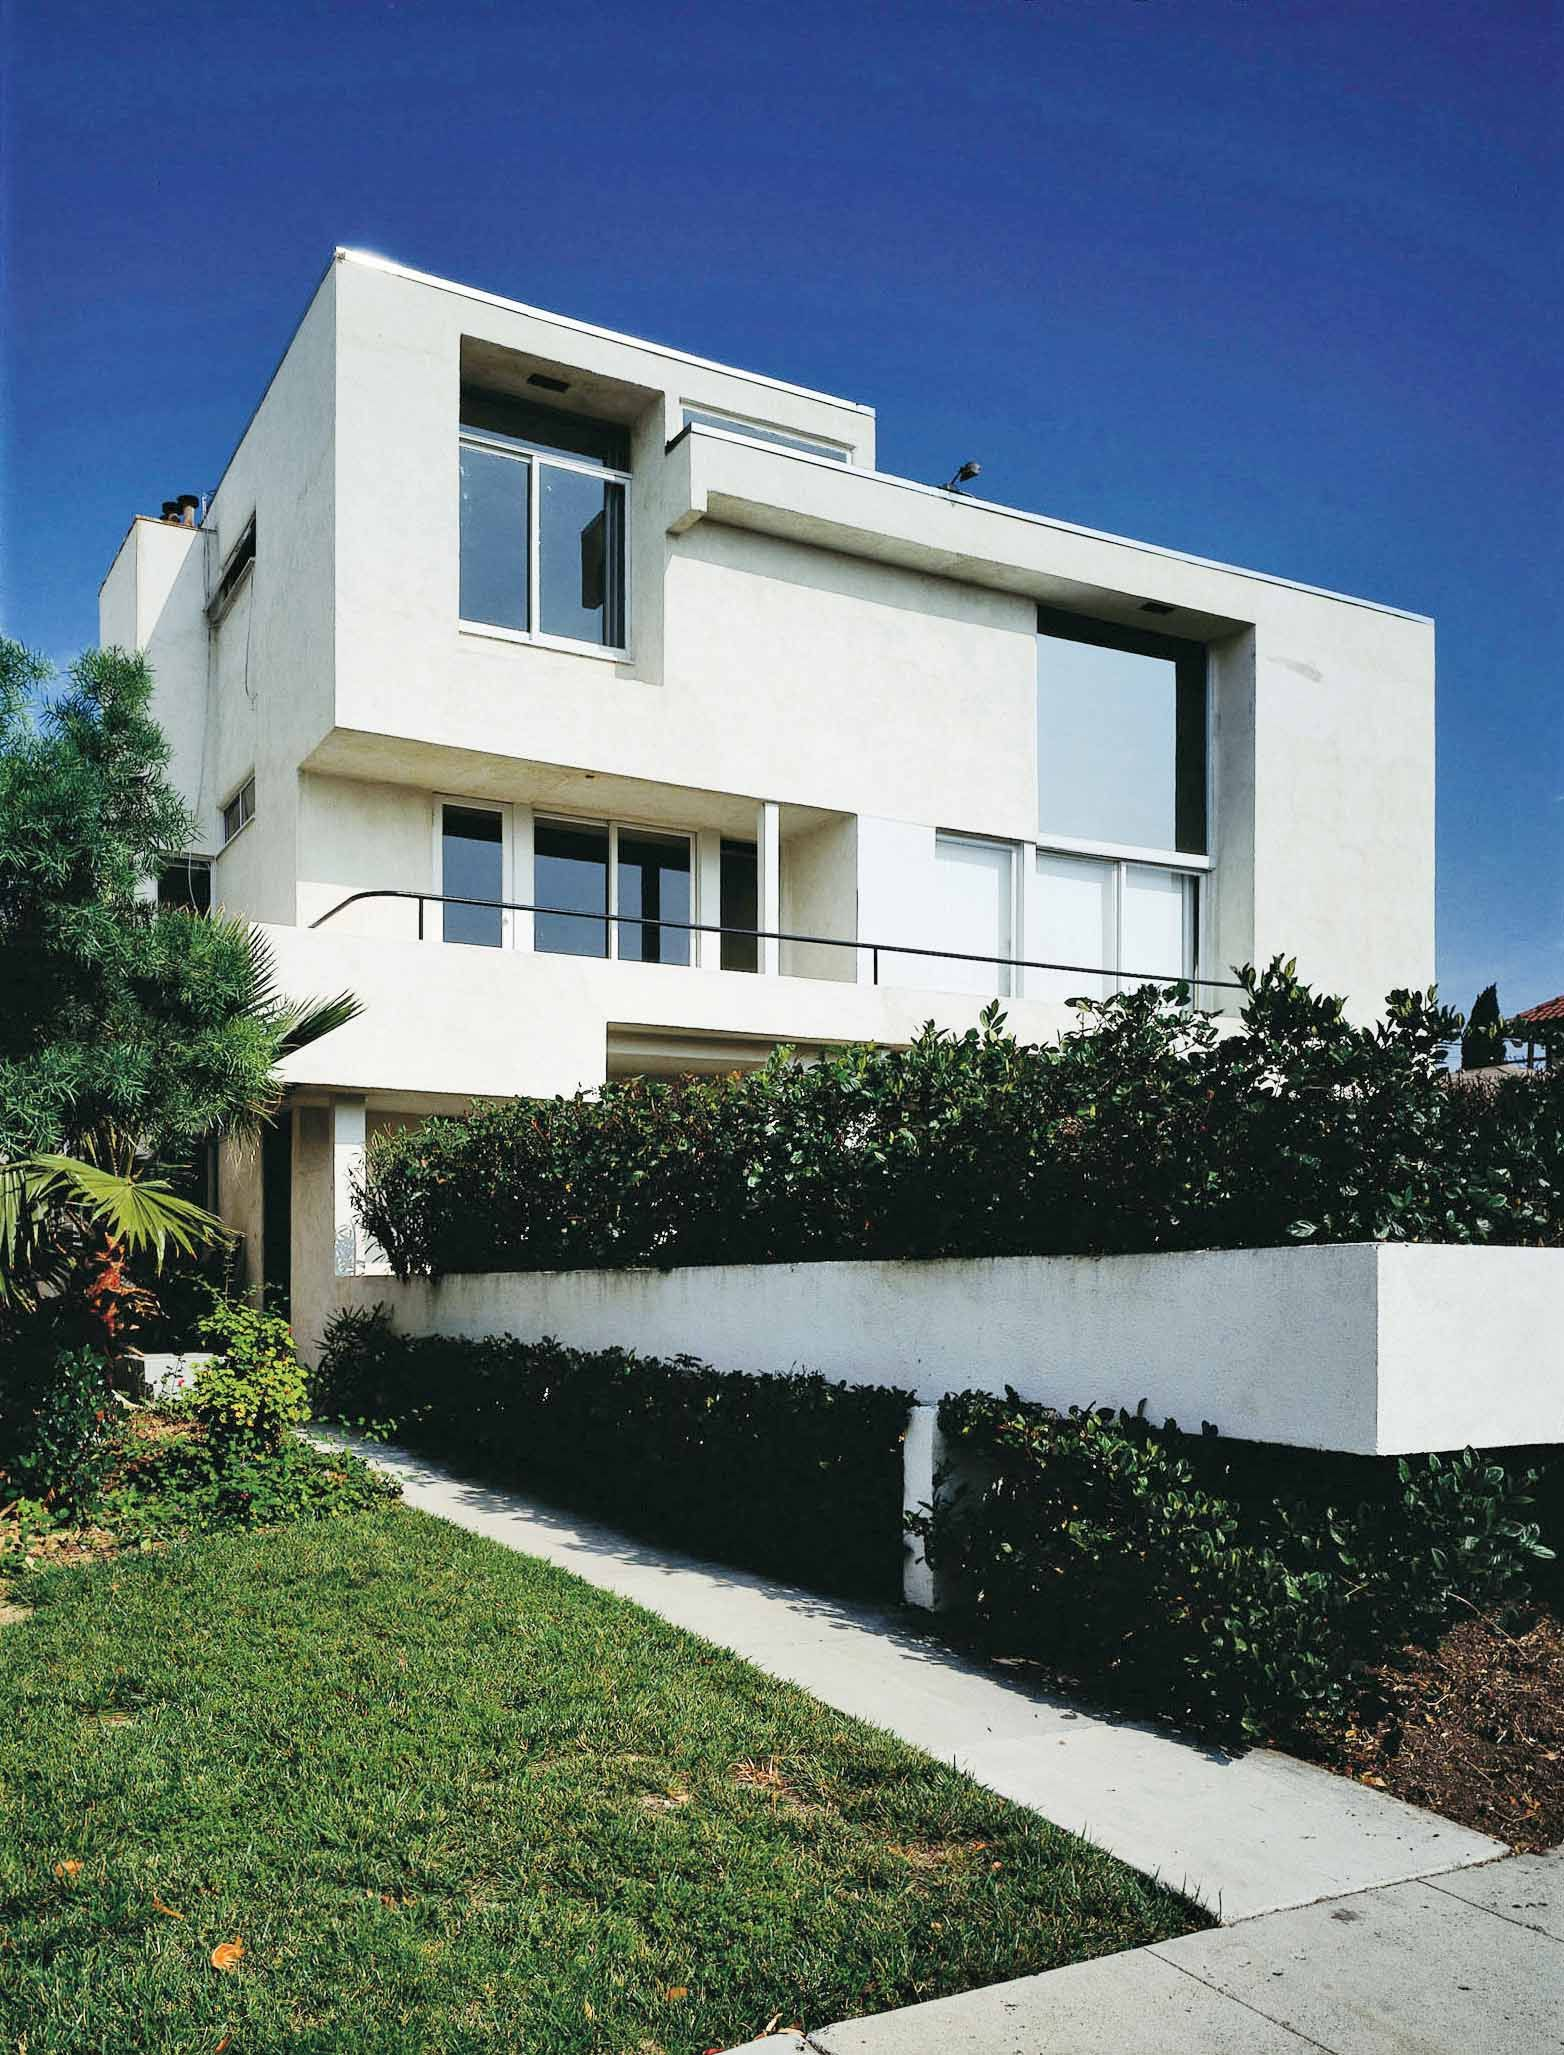 Mak Center For Art And Architecture Los Angeles Mackey Apartments R M Schindler 1939